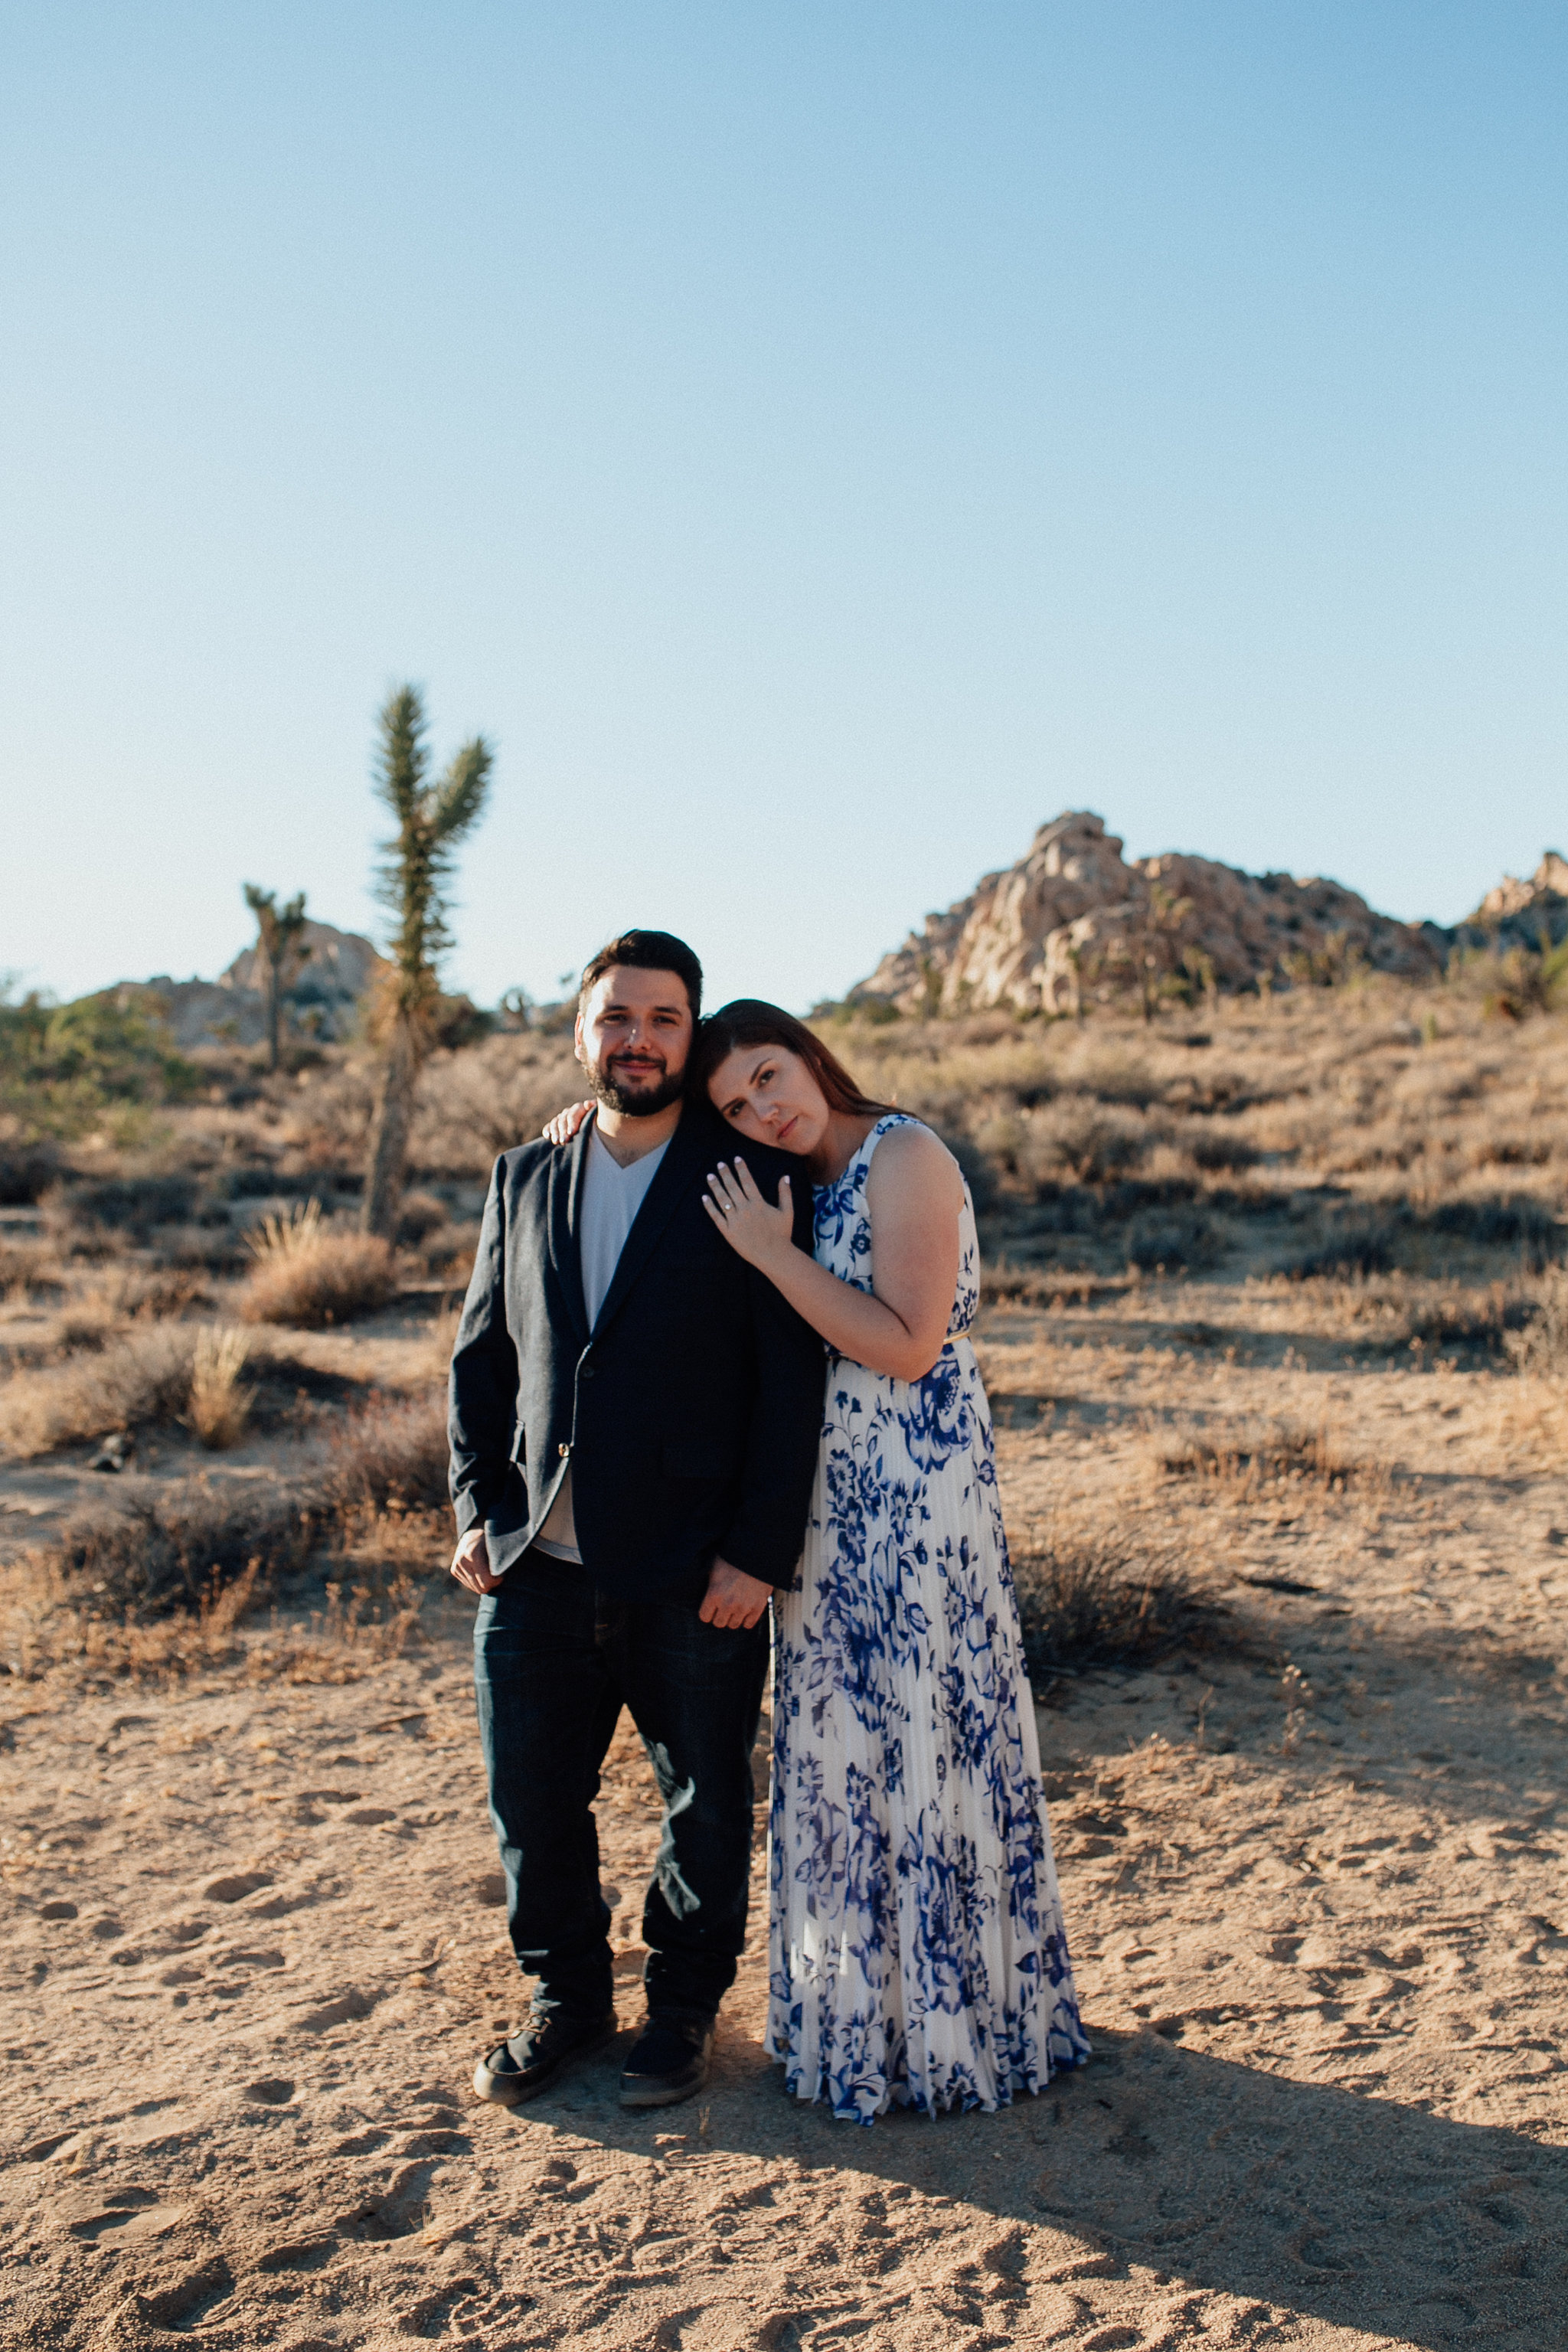 joshua-tree-engagement-session_marble-rye-photography-JA11.JPG